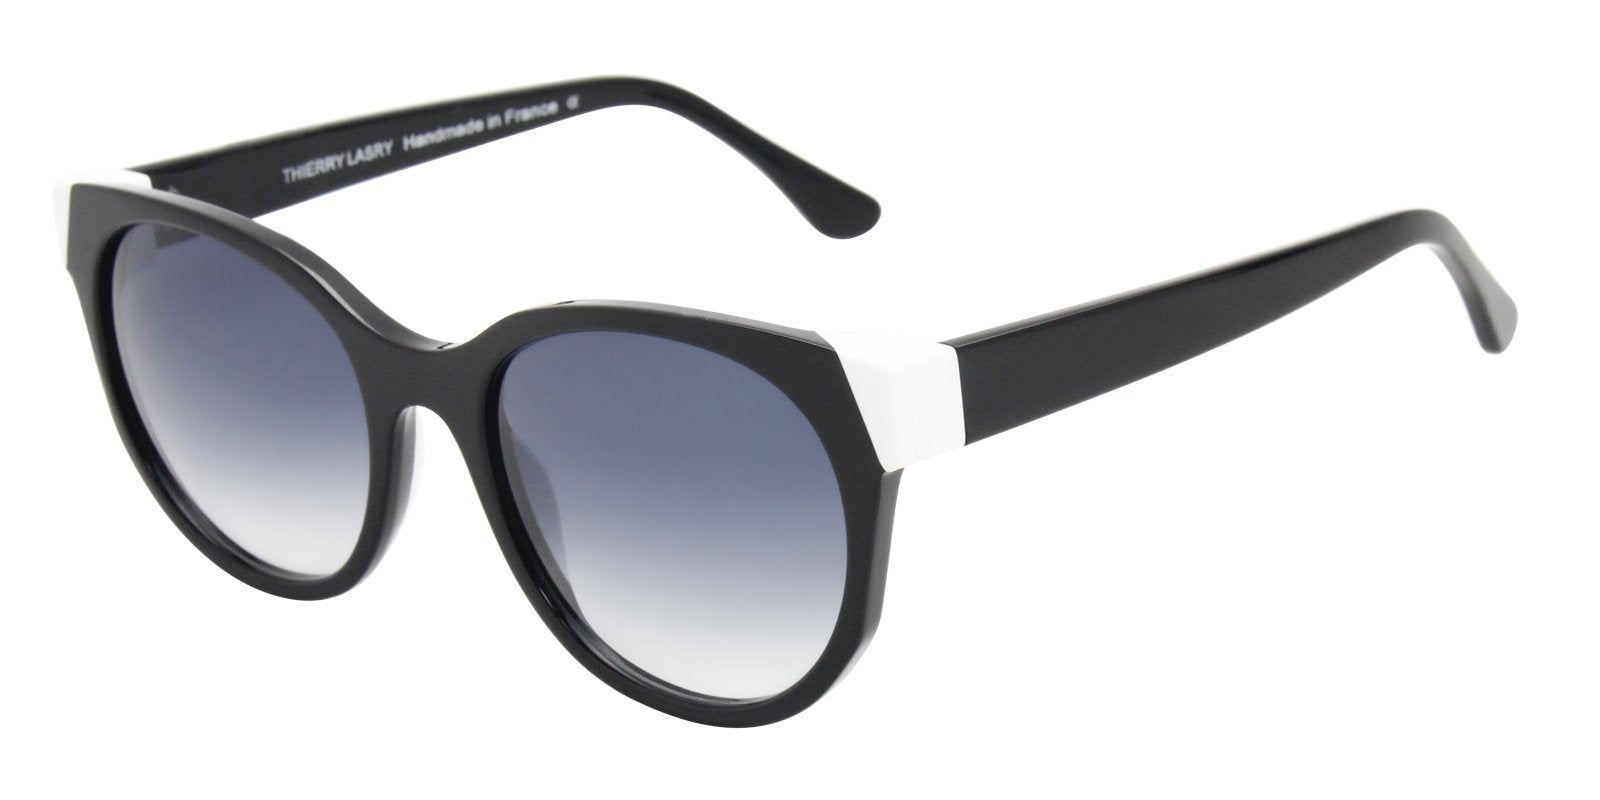 Thierry Lasry - Peroxxxy Black Oval Women Sunglasses - 57mm-Sunglasses-Designer Eyes